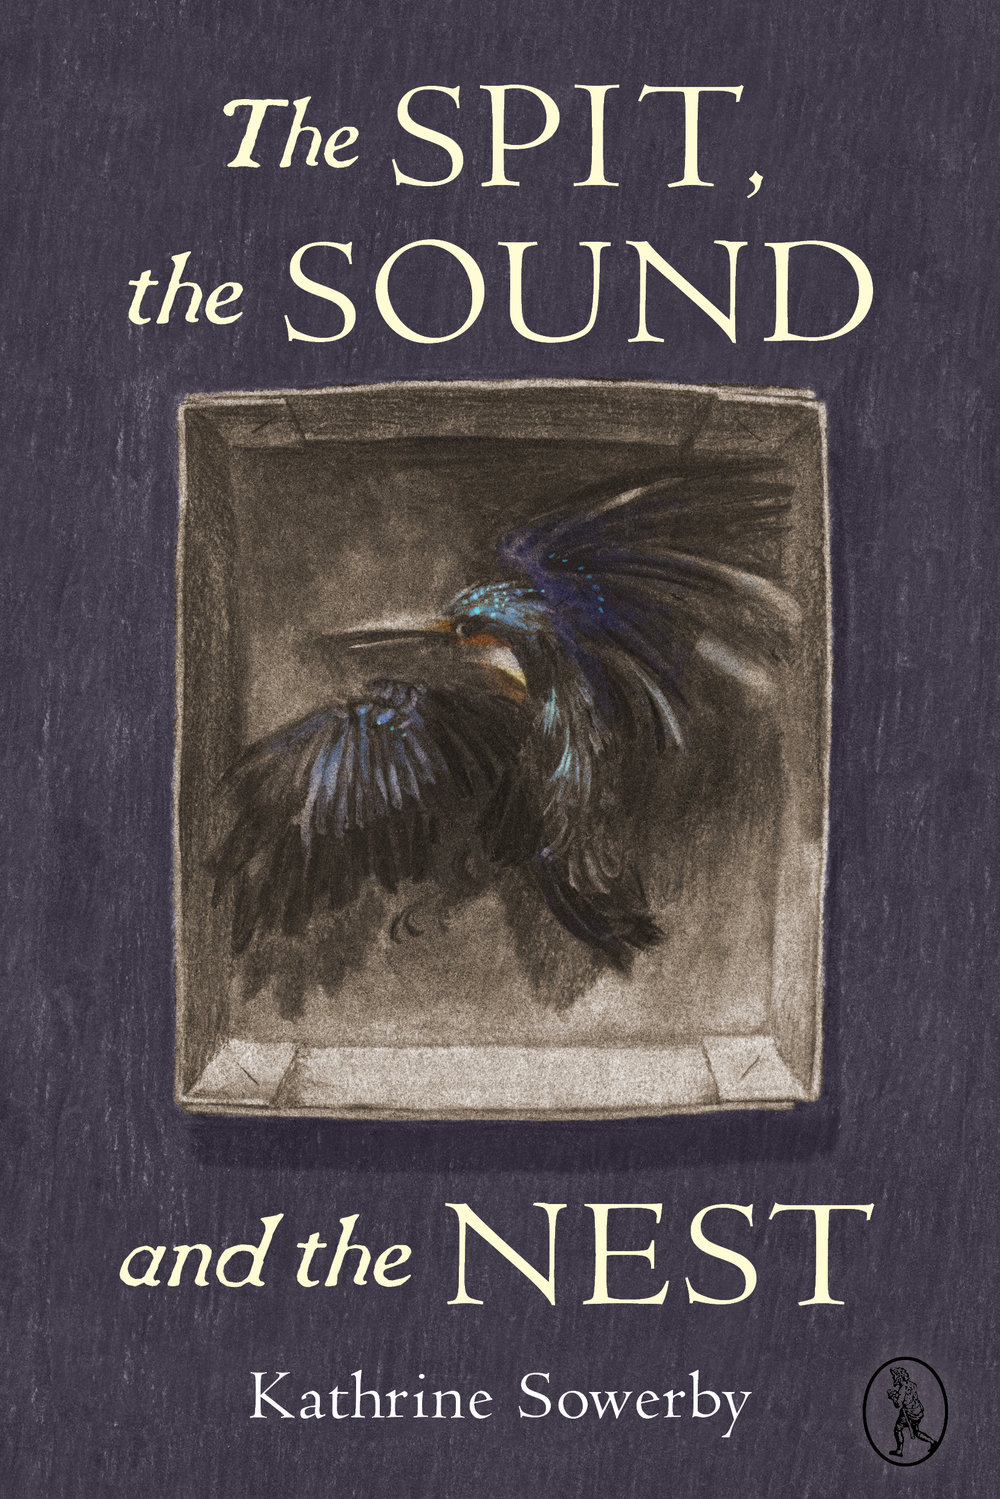 The Spit, the Sound and the Nest